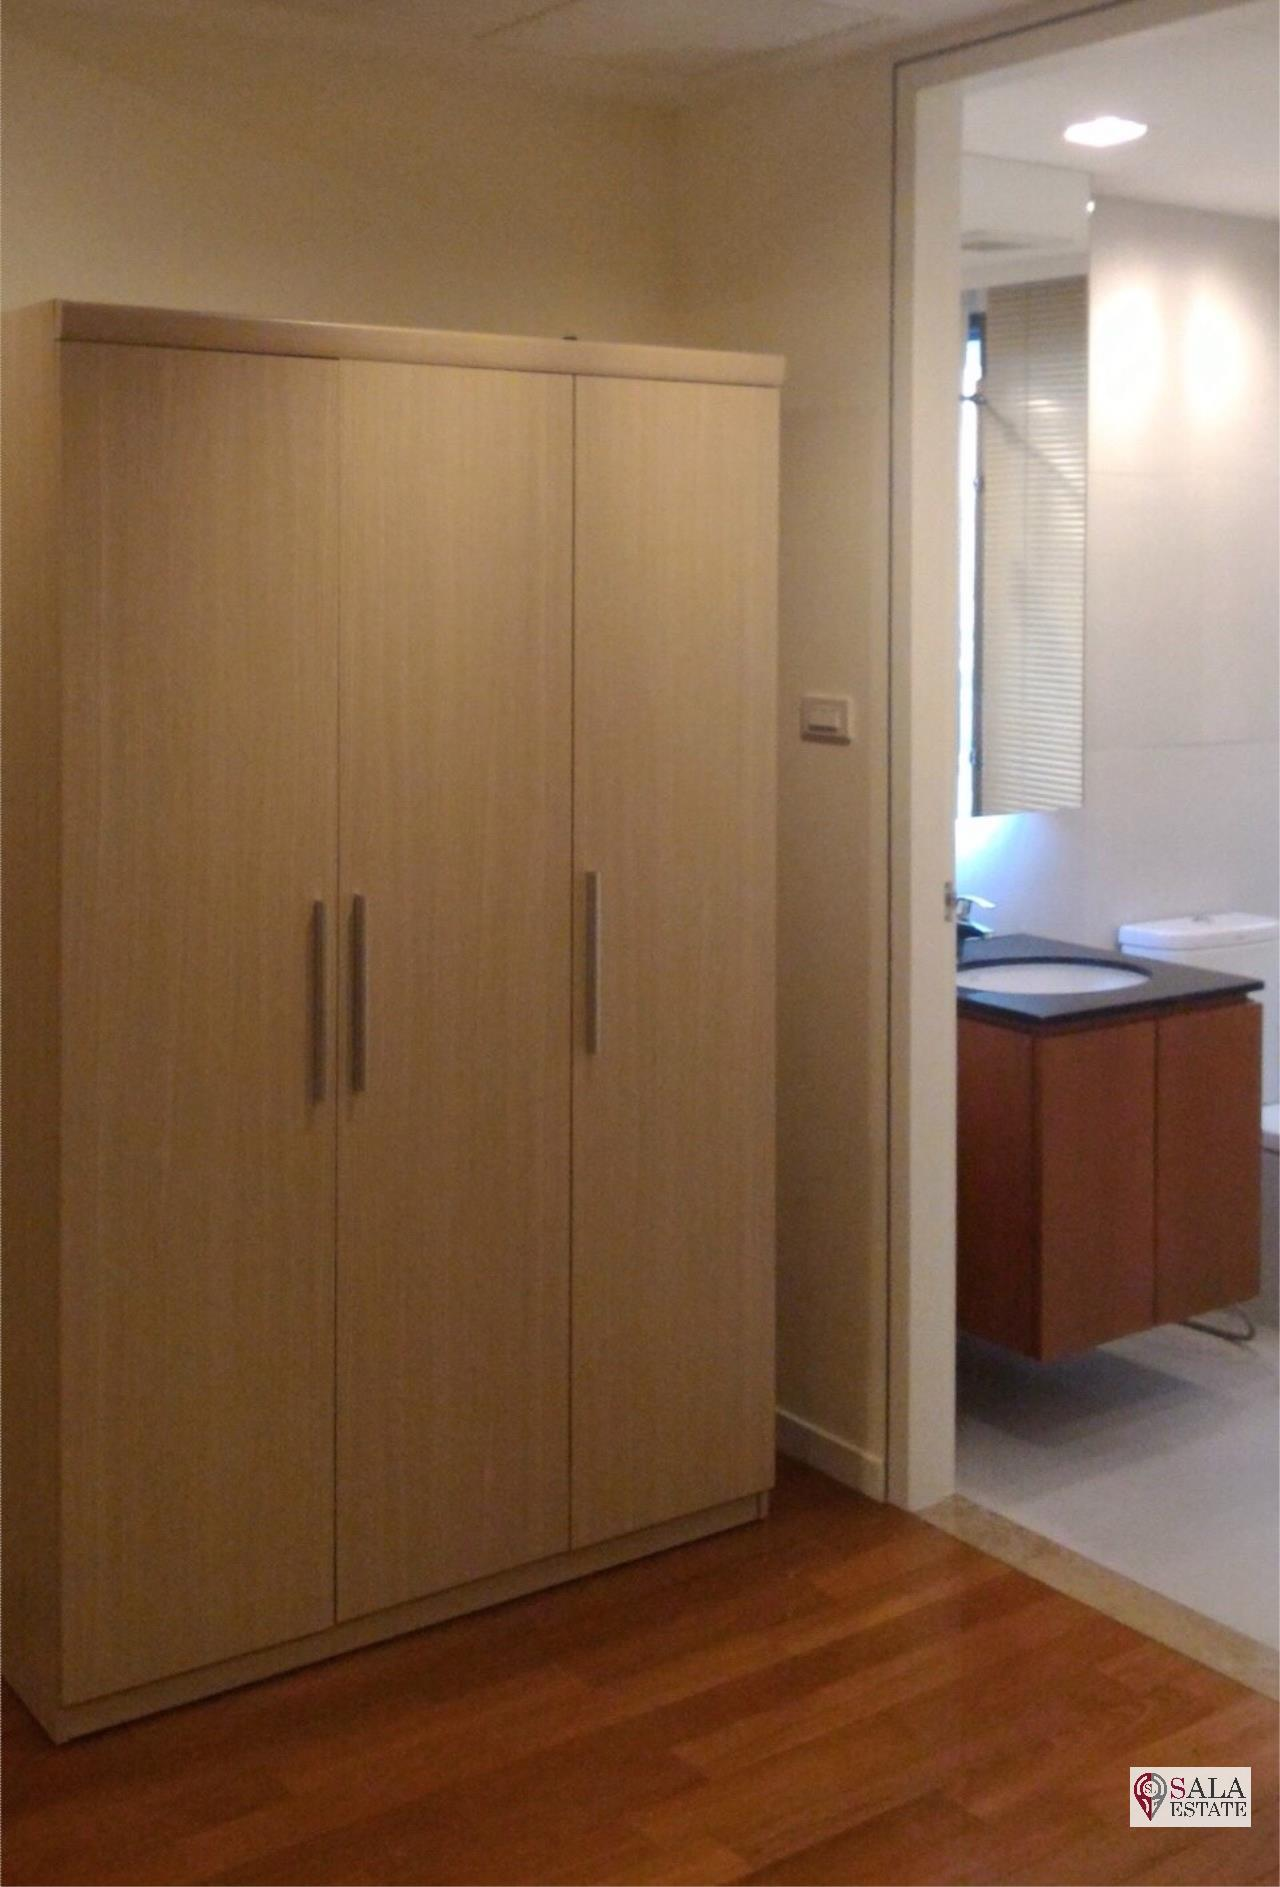 SALA ESTATE Agency's AMANTA LUMPINI – MRT LUMPINI, 2 Bedroom 3 Bathroom, Fully furnished, City View 6